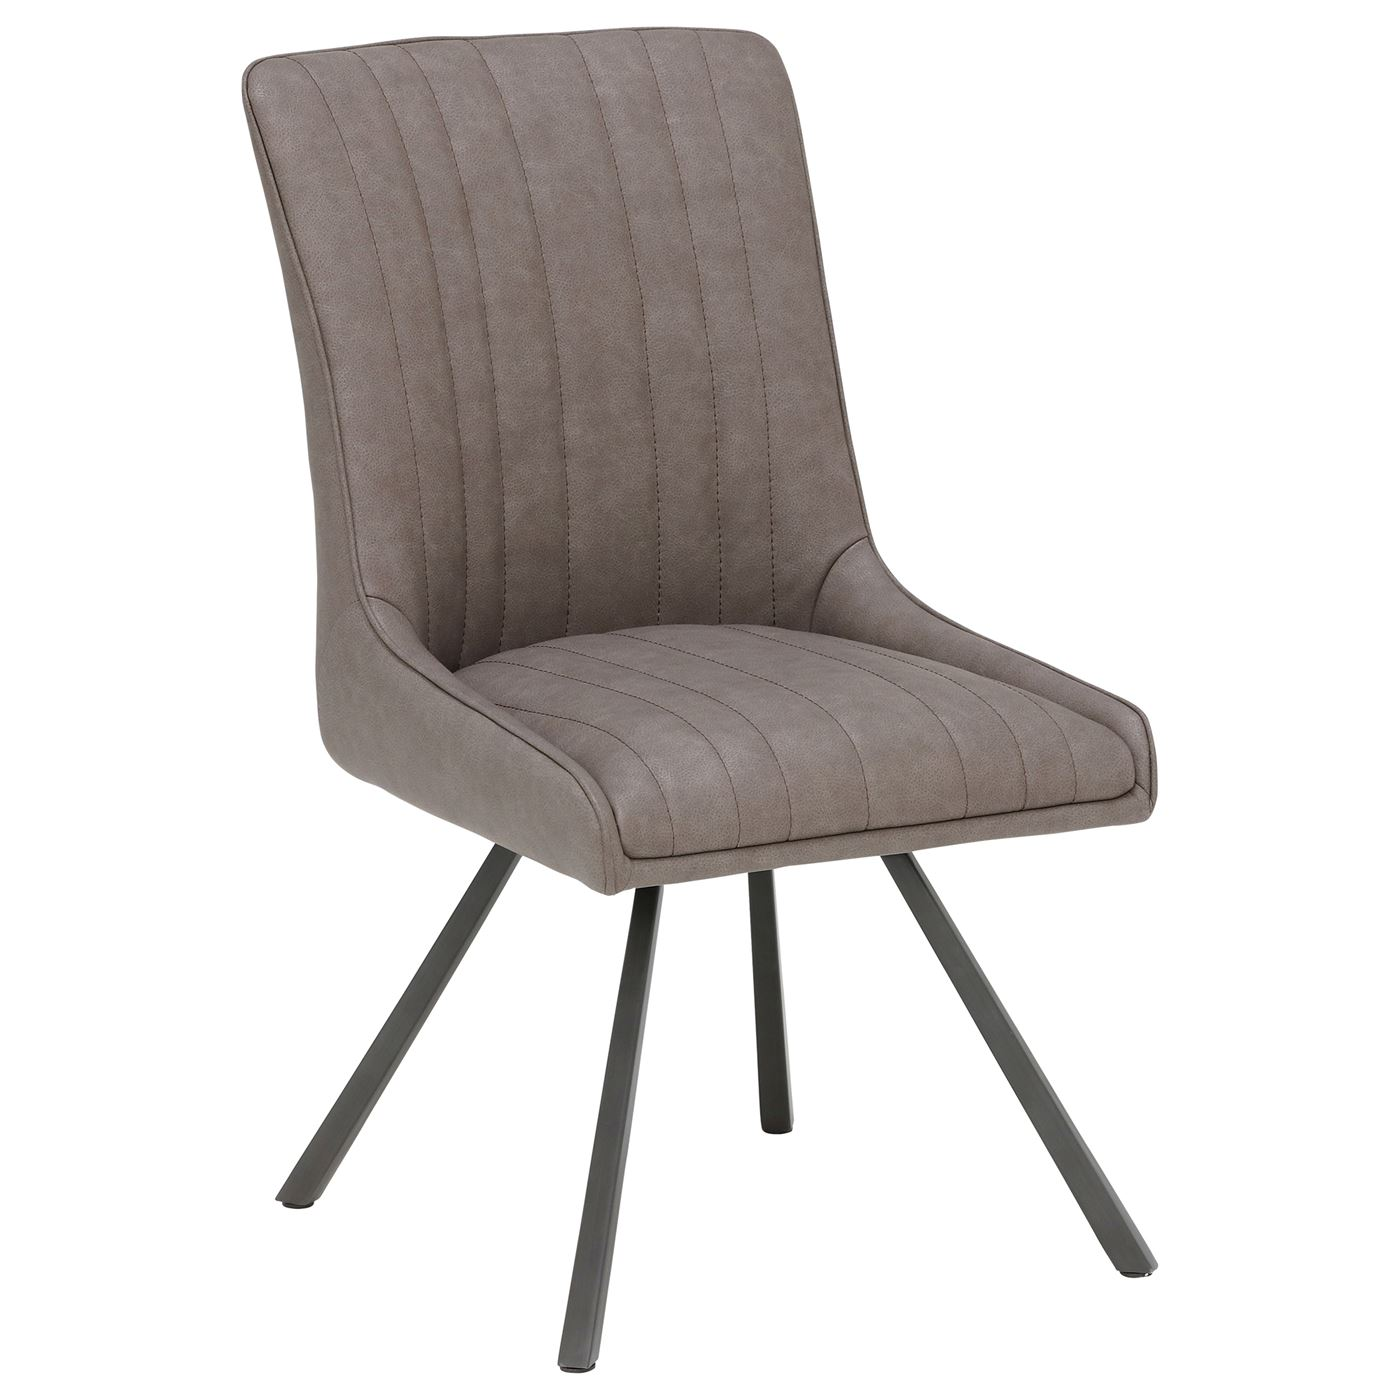 Strelley Dining Chair